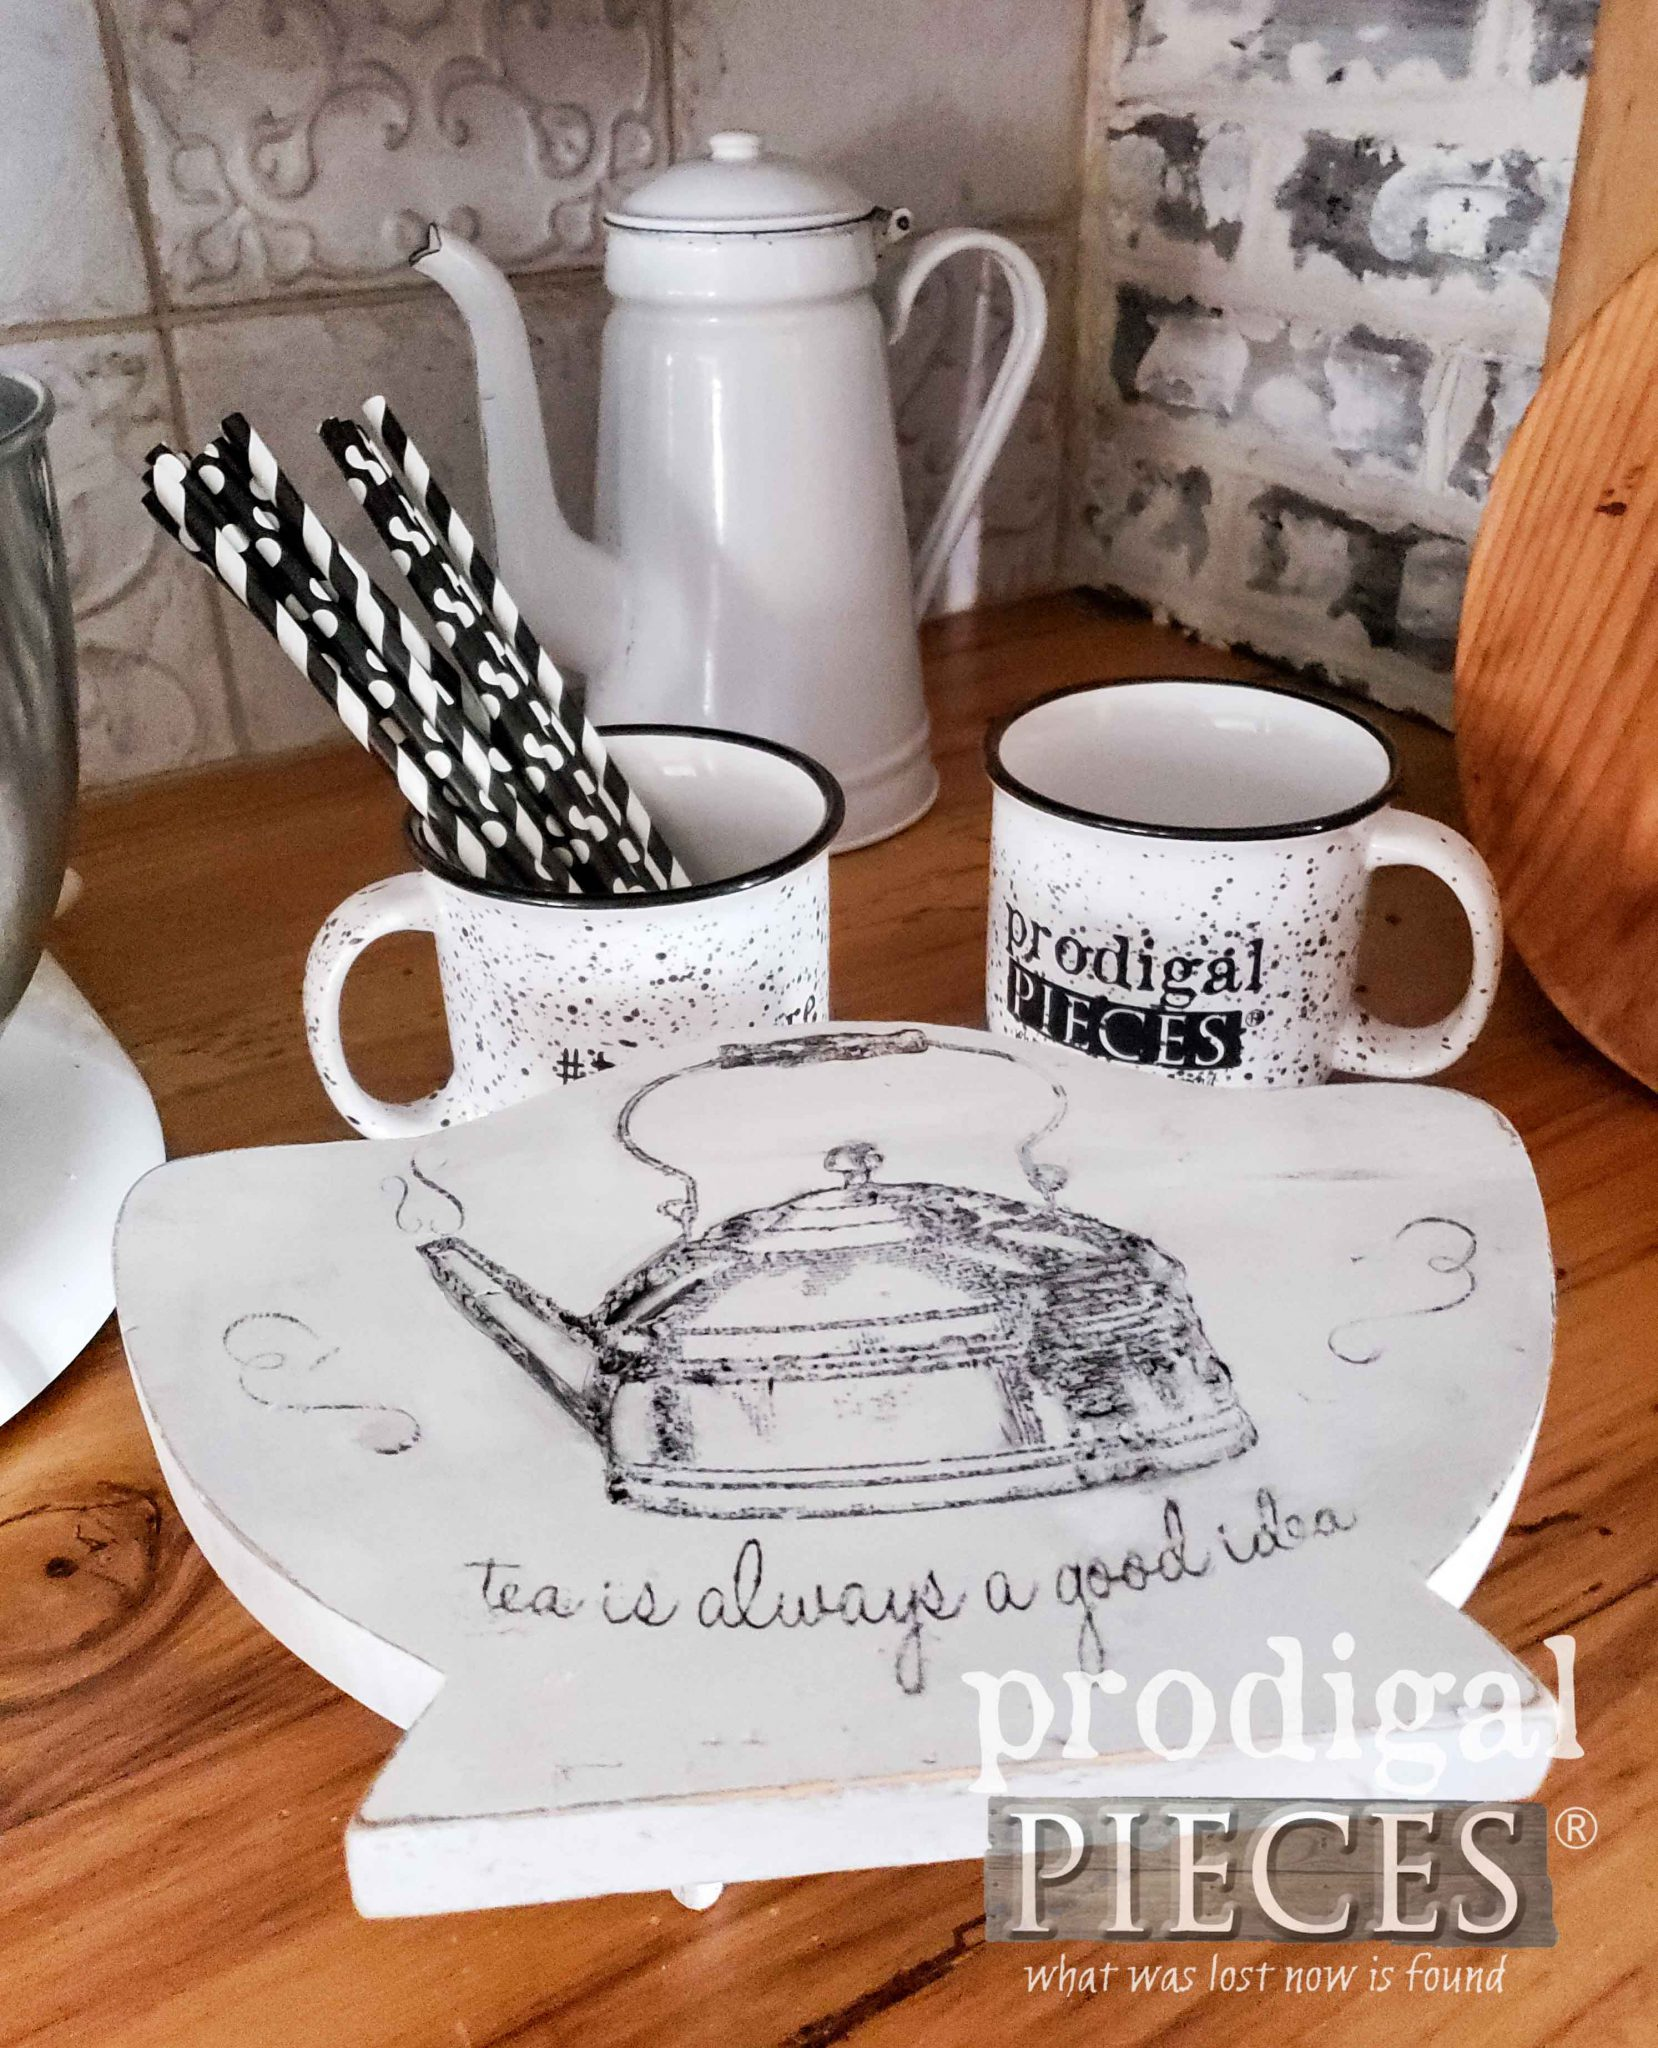 Farmhouse Style Trivet Riser for a Teapot in Kitchen Decor by Larissa of Prodigal Pieces | prodigalpieces.com #prodigalpieces #diy #home #farmhouse #homedecor